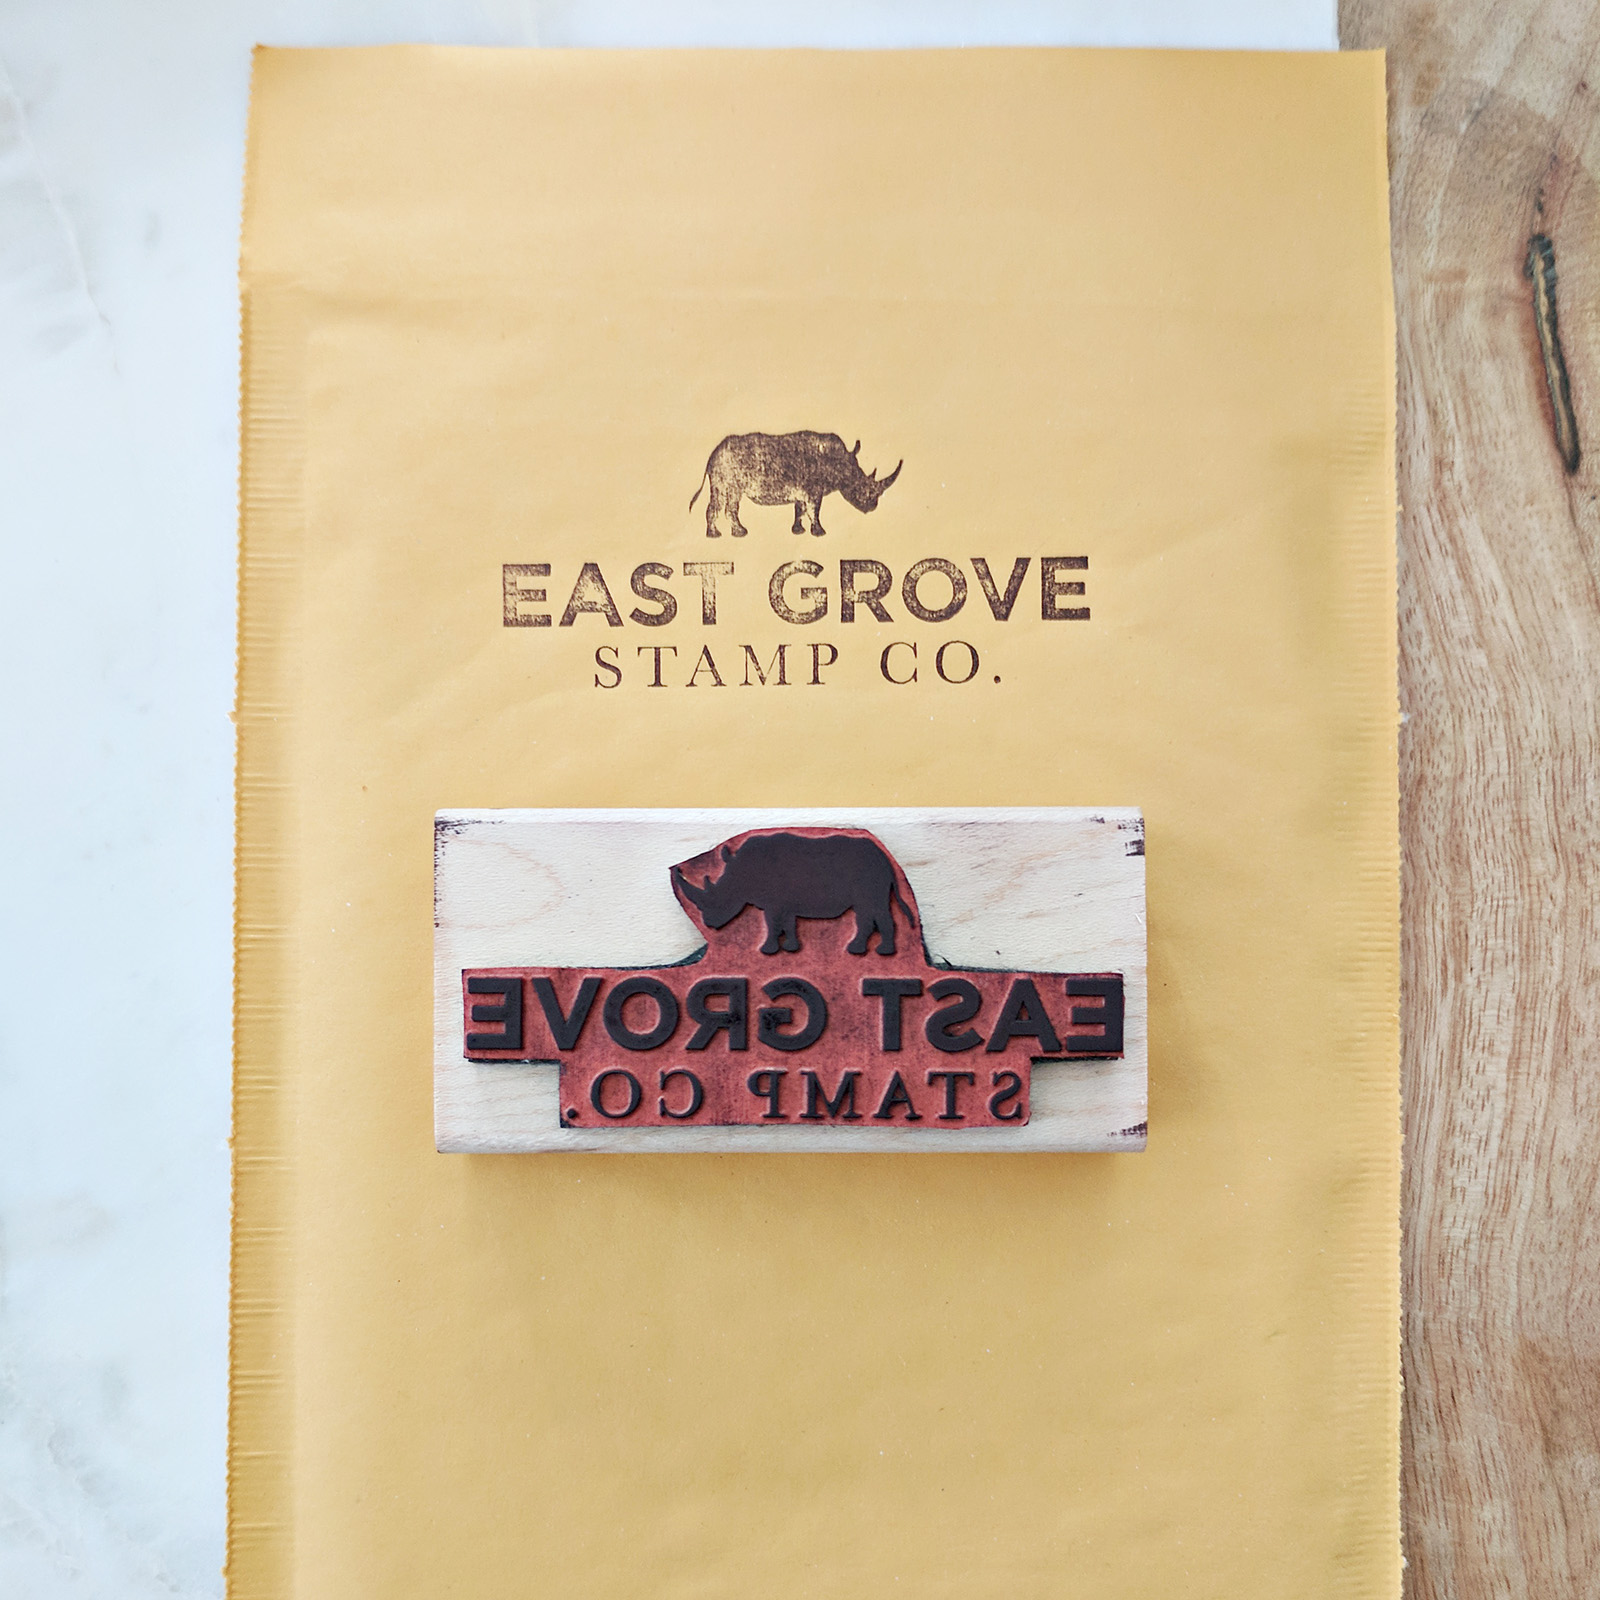 Bubble Mailers - While they aren't the easiest to stamp onto, we make sure to add a logo stamp to each mailer.